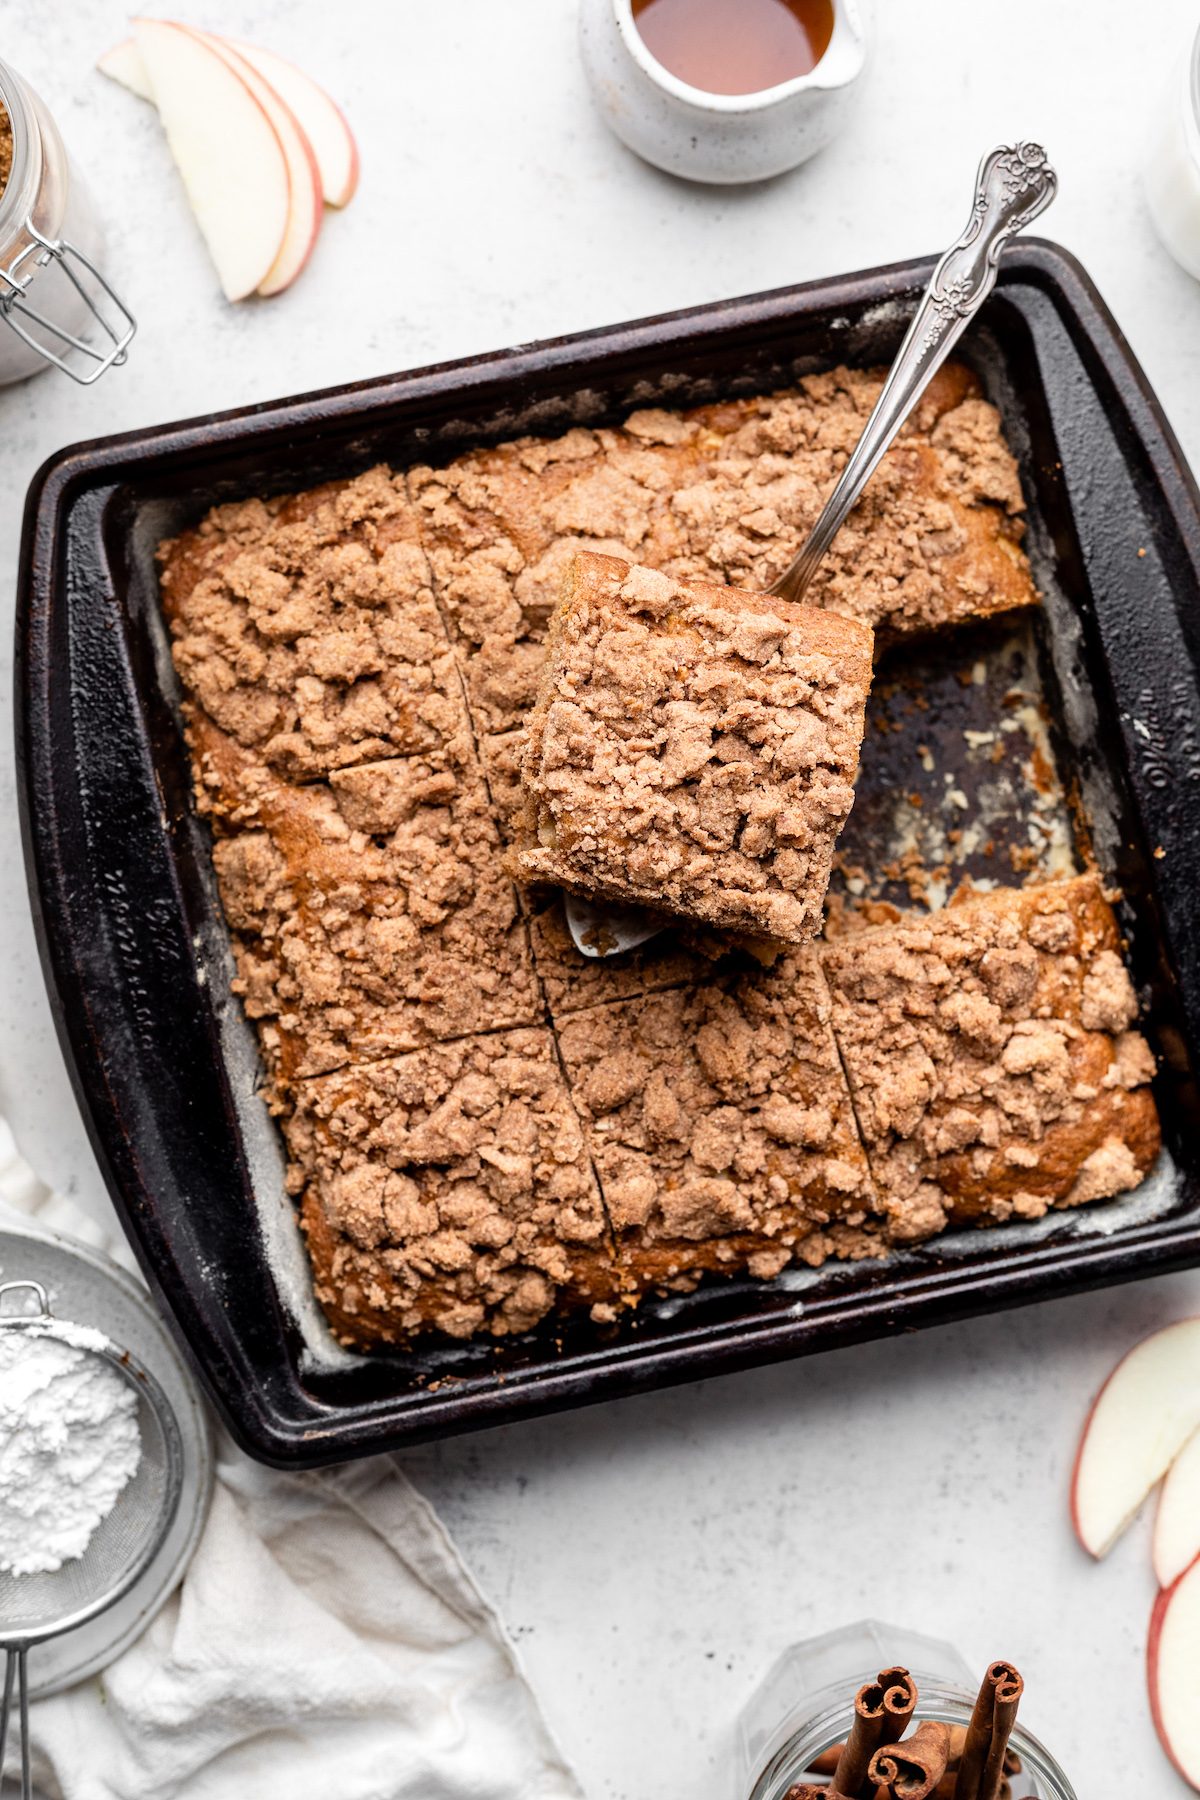 Silver serving spoon lifting a slice of coffee cake out of a dark baking pan.